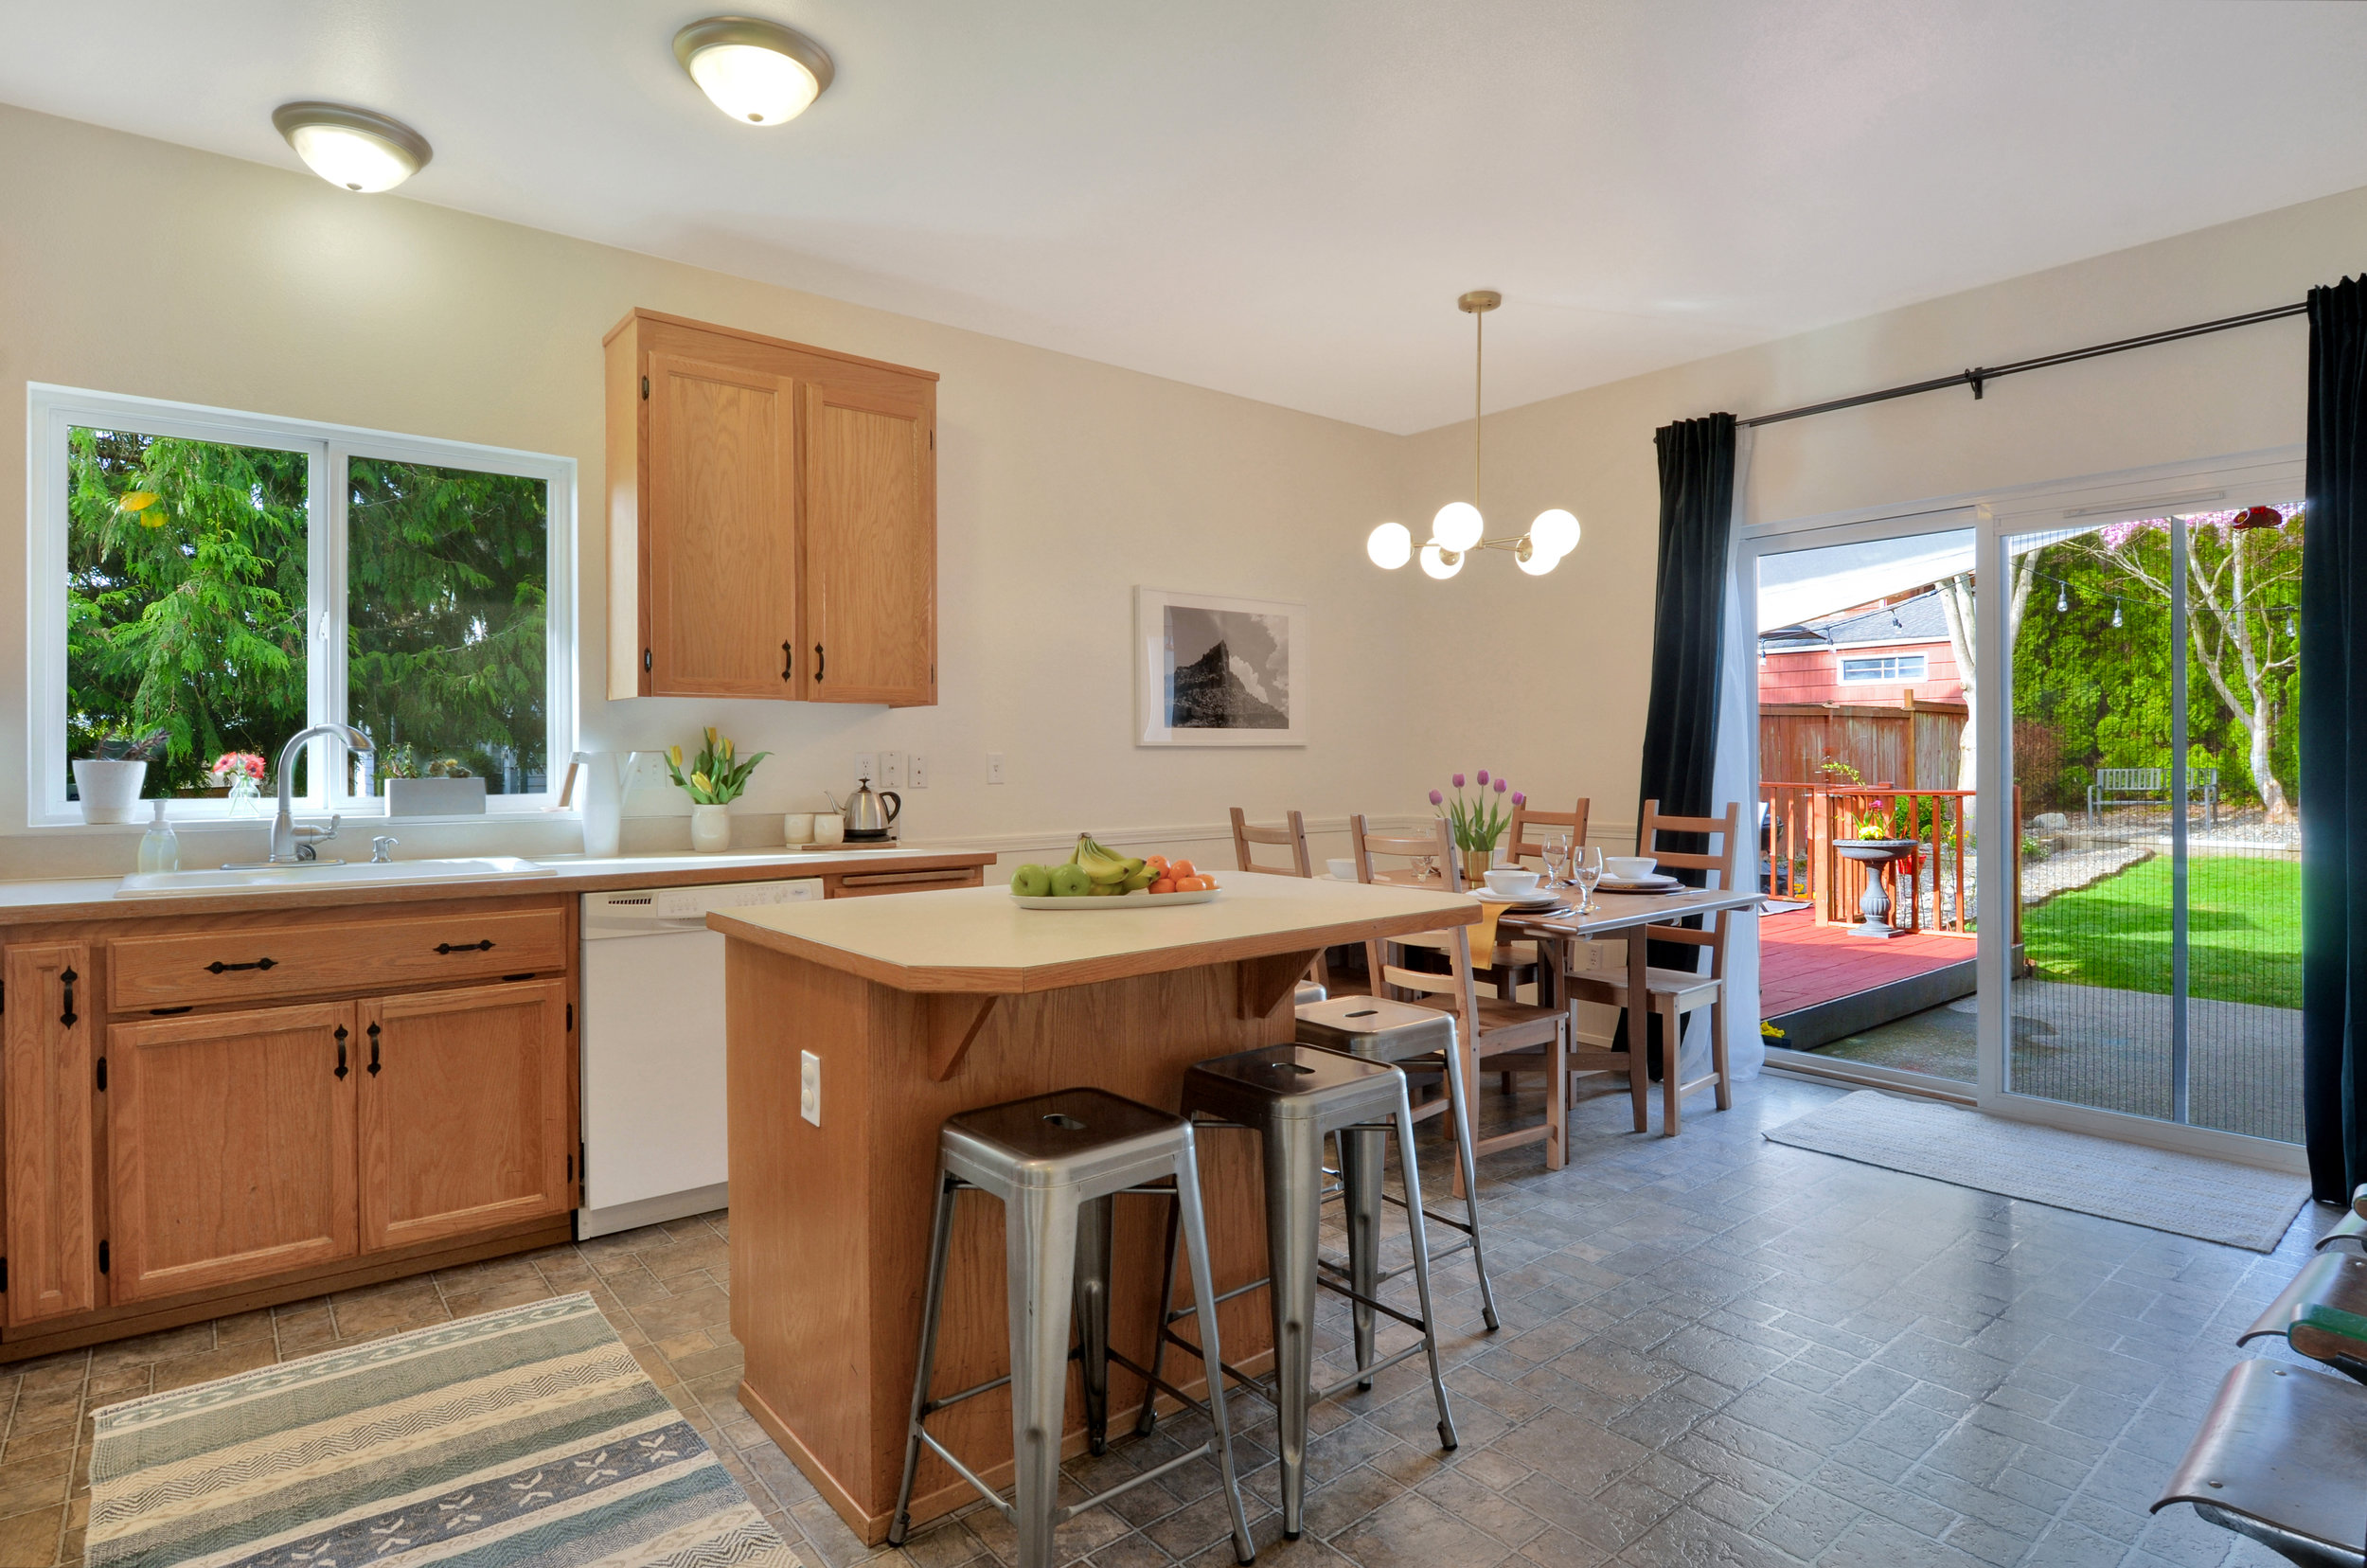 This spacious eat-in kitchen is one of the favorite features of the homeowners. They host 15 for holiday dinners and love the light coming in through the big sliding glass doors.